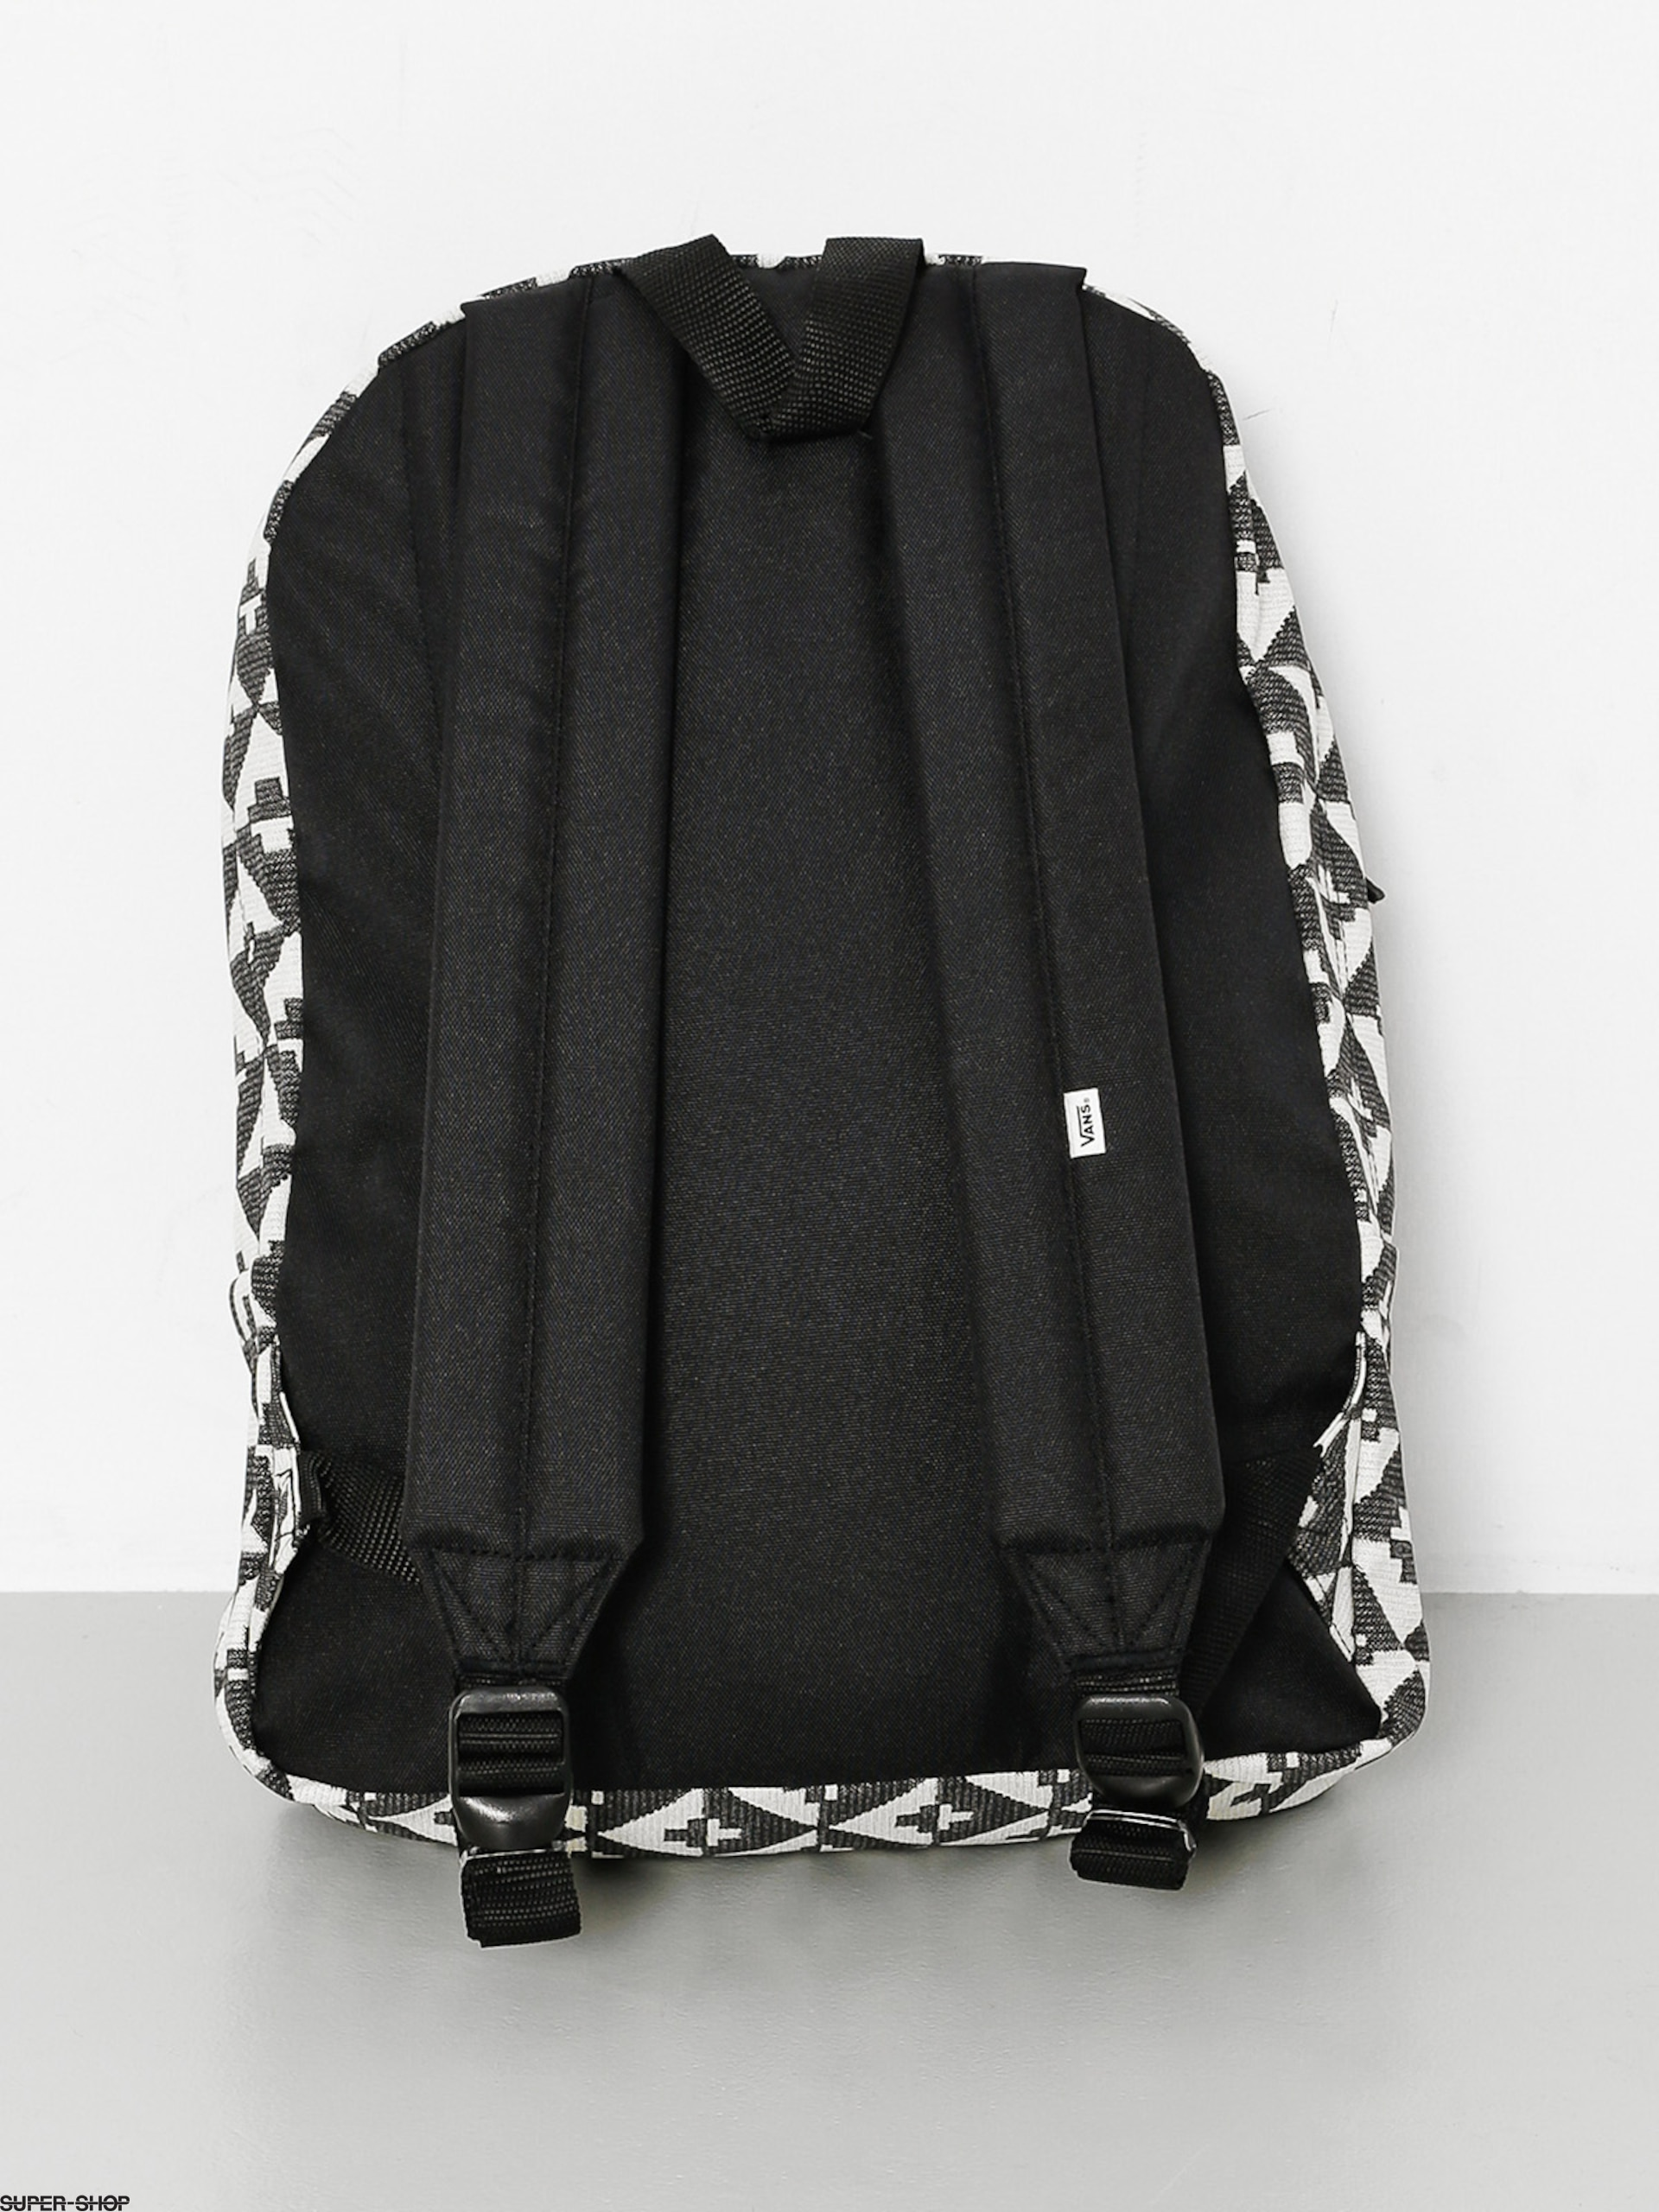 b8eb4a2179 Vans Realm Black And White Geo Backpack- Fenix Toulouse Handball